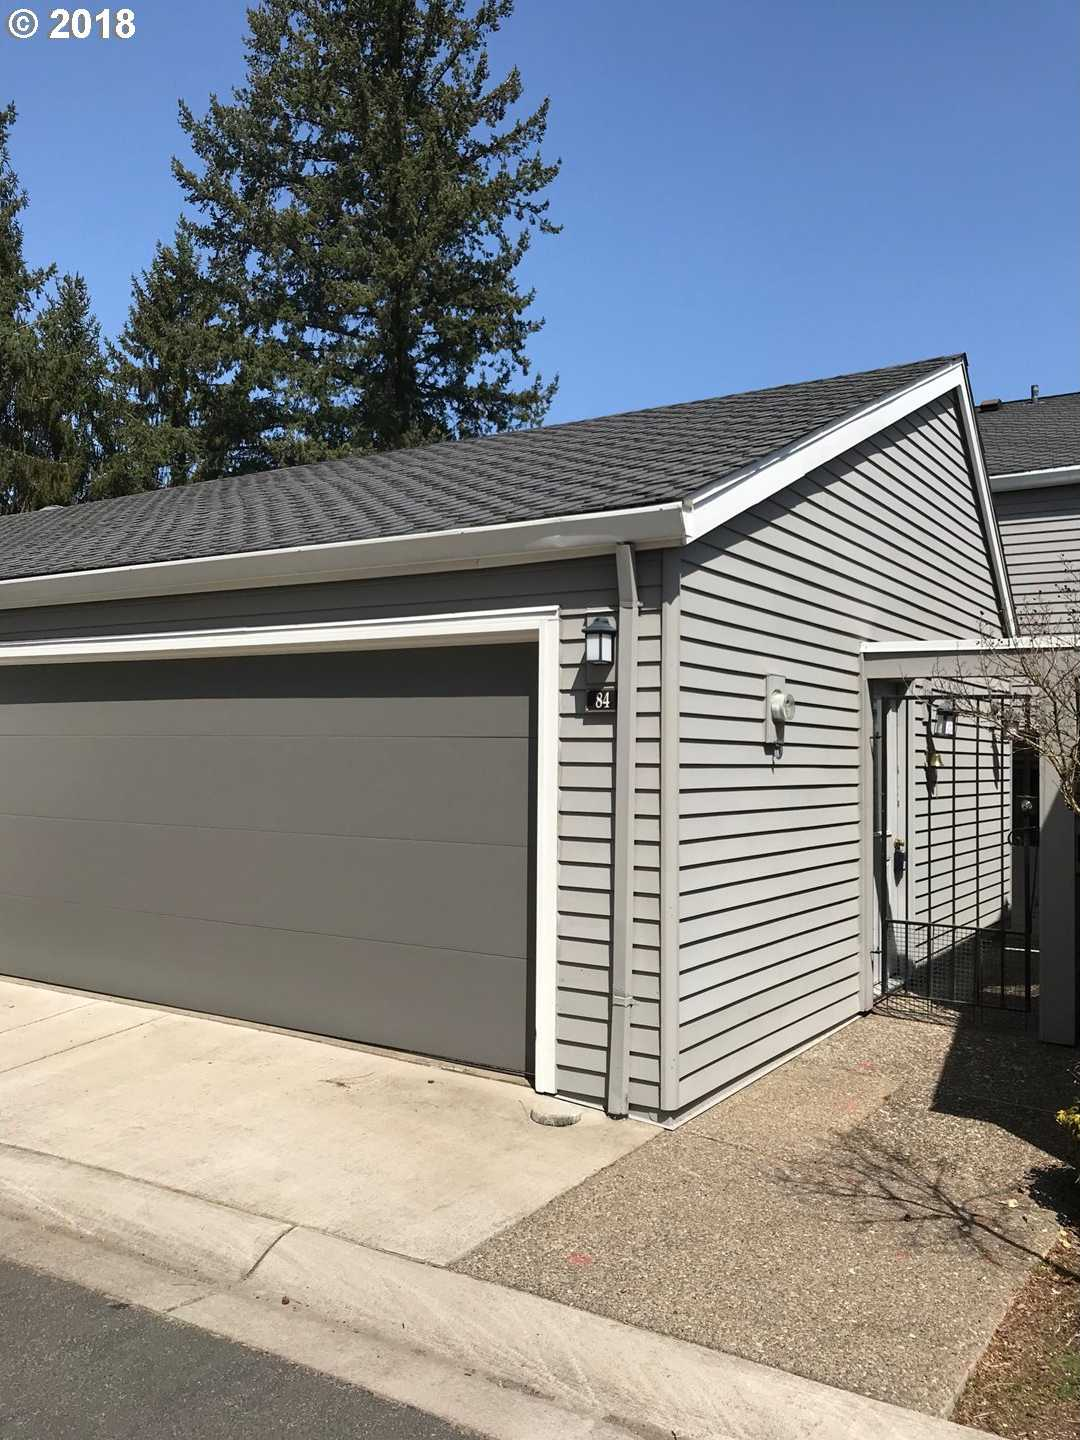 $430,000 - 4Br/3Ba -  for Sale in Mountain Park, Lake Oswego